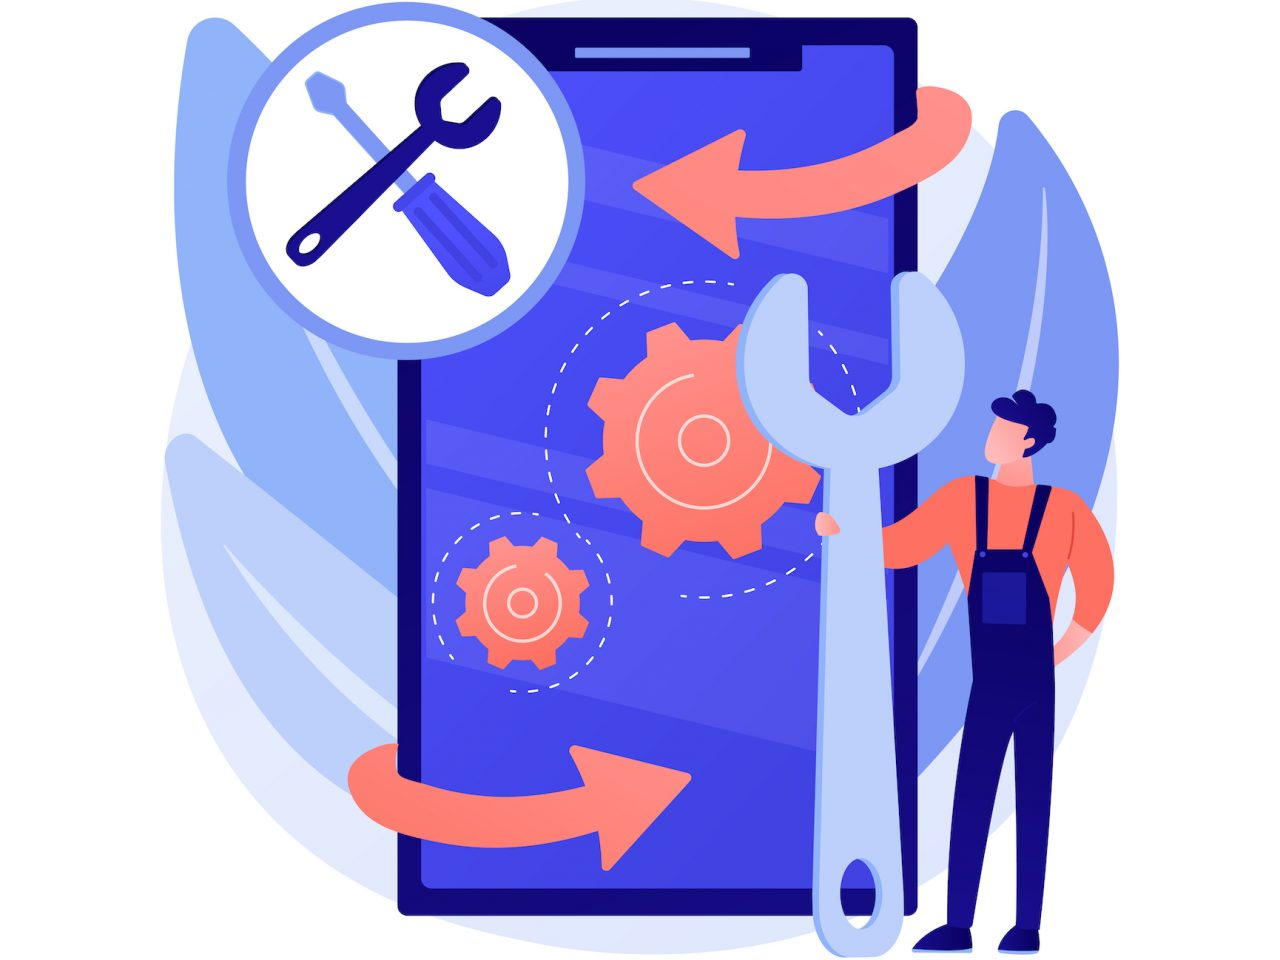 Mobile device repair abstract concept vector illustration. Mobile phone and tablet repair service, smartphone setup, device problem diagnostics, broken gadget, smartwatch fixing abstract metaphor.